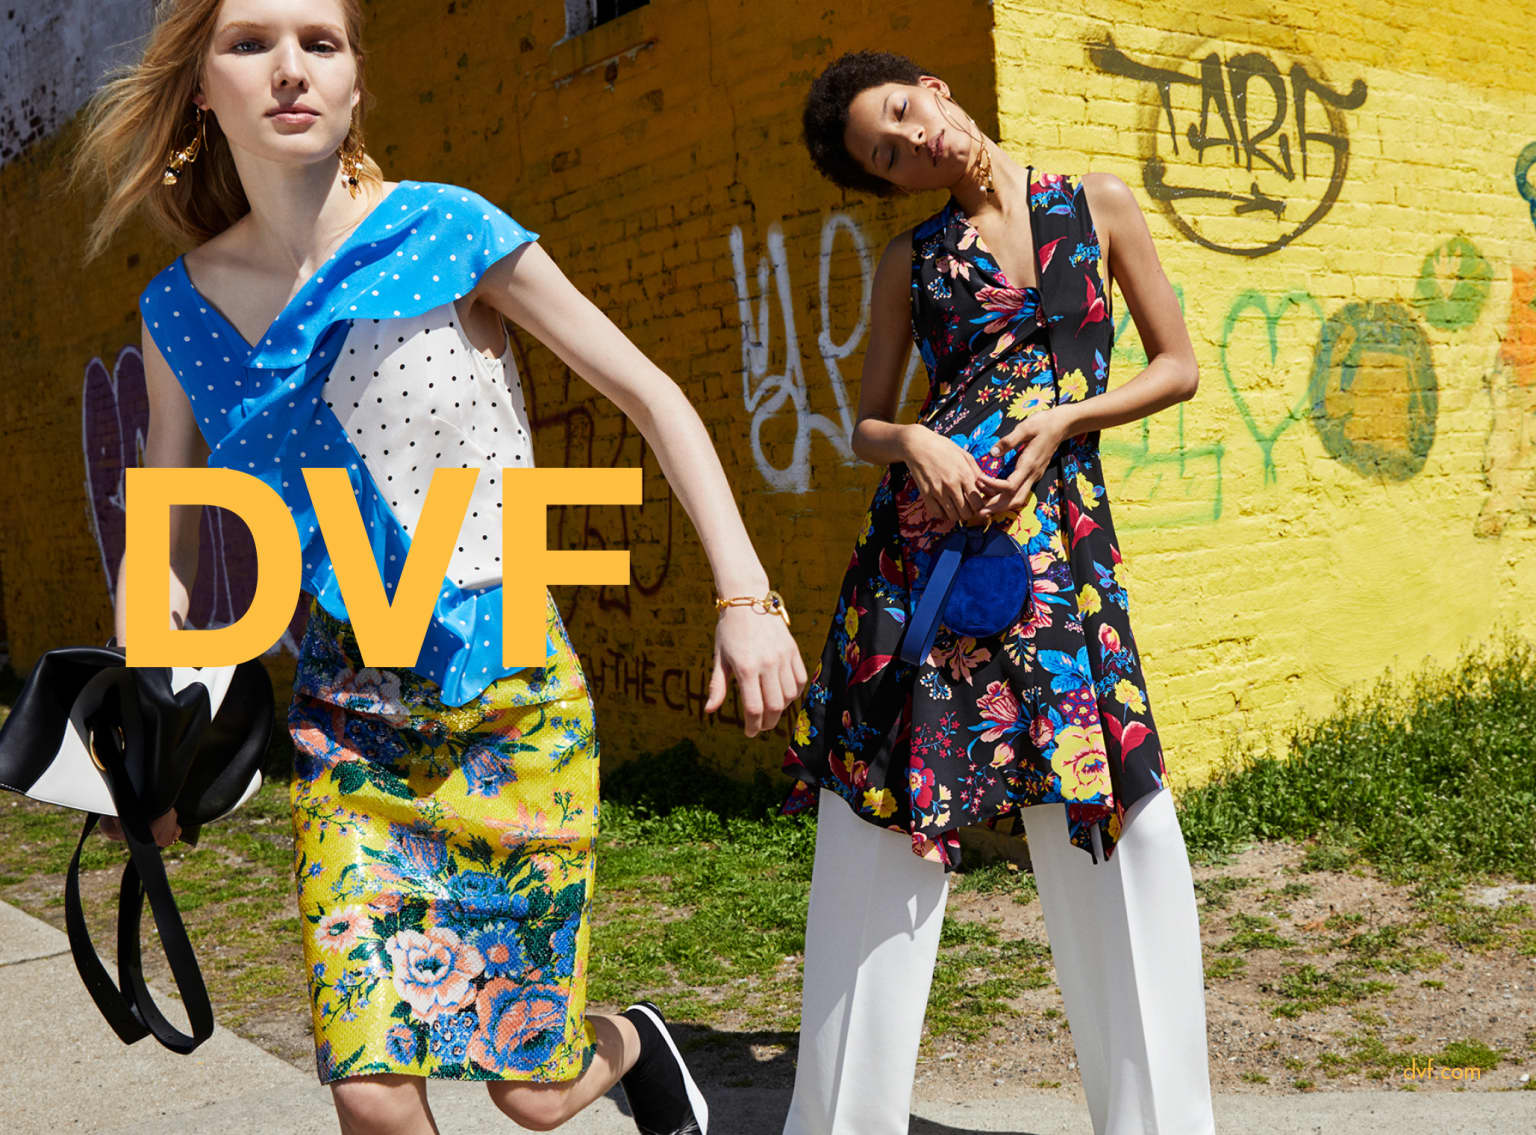 DVF Summer Campaign